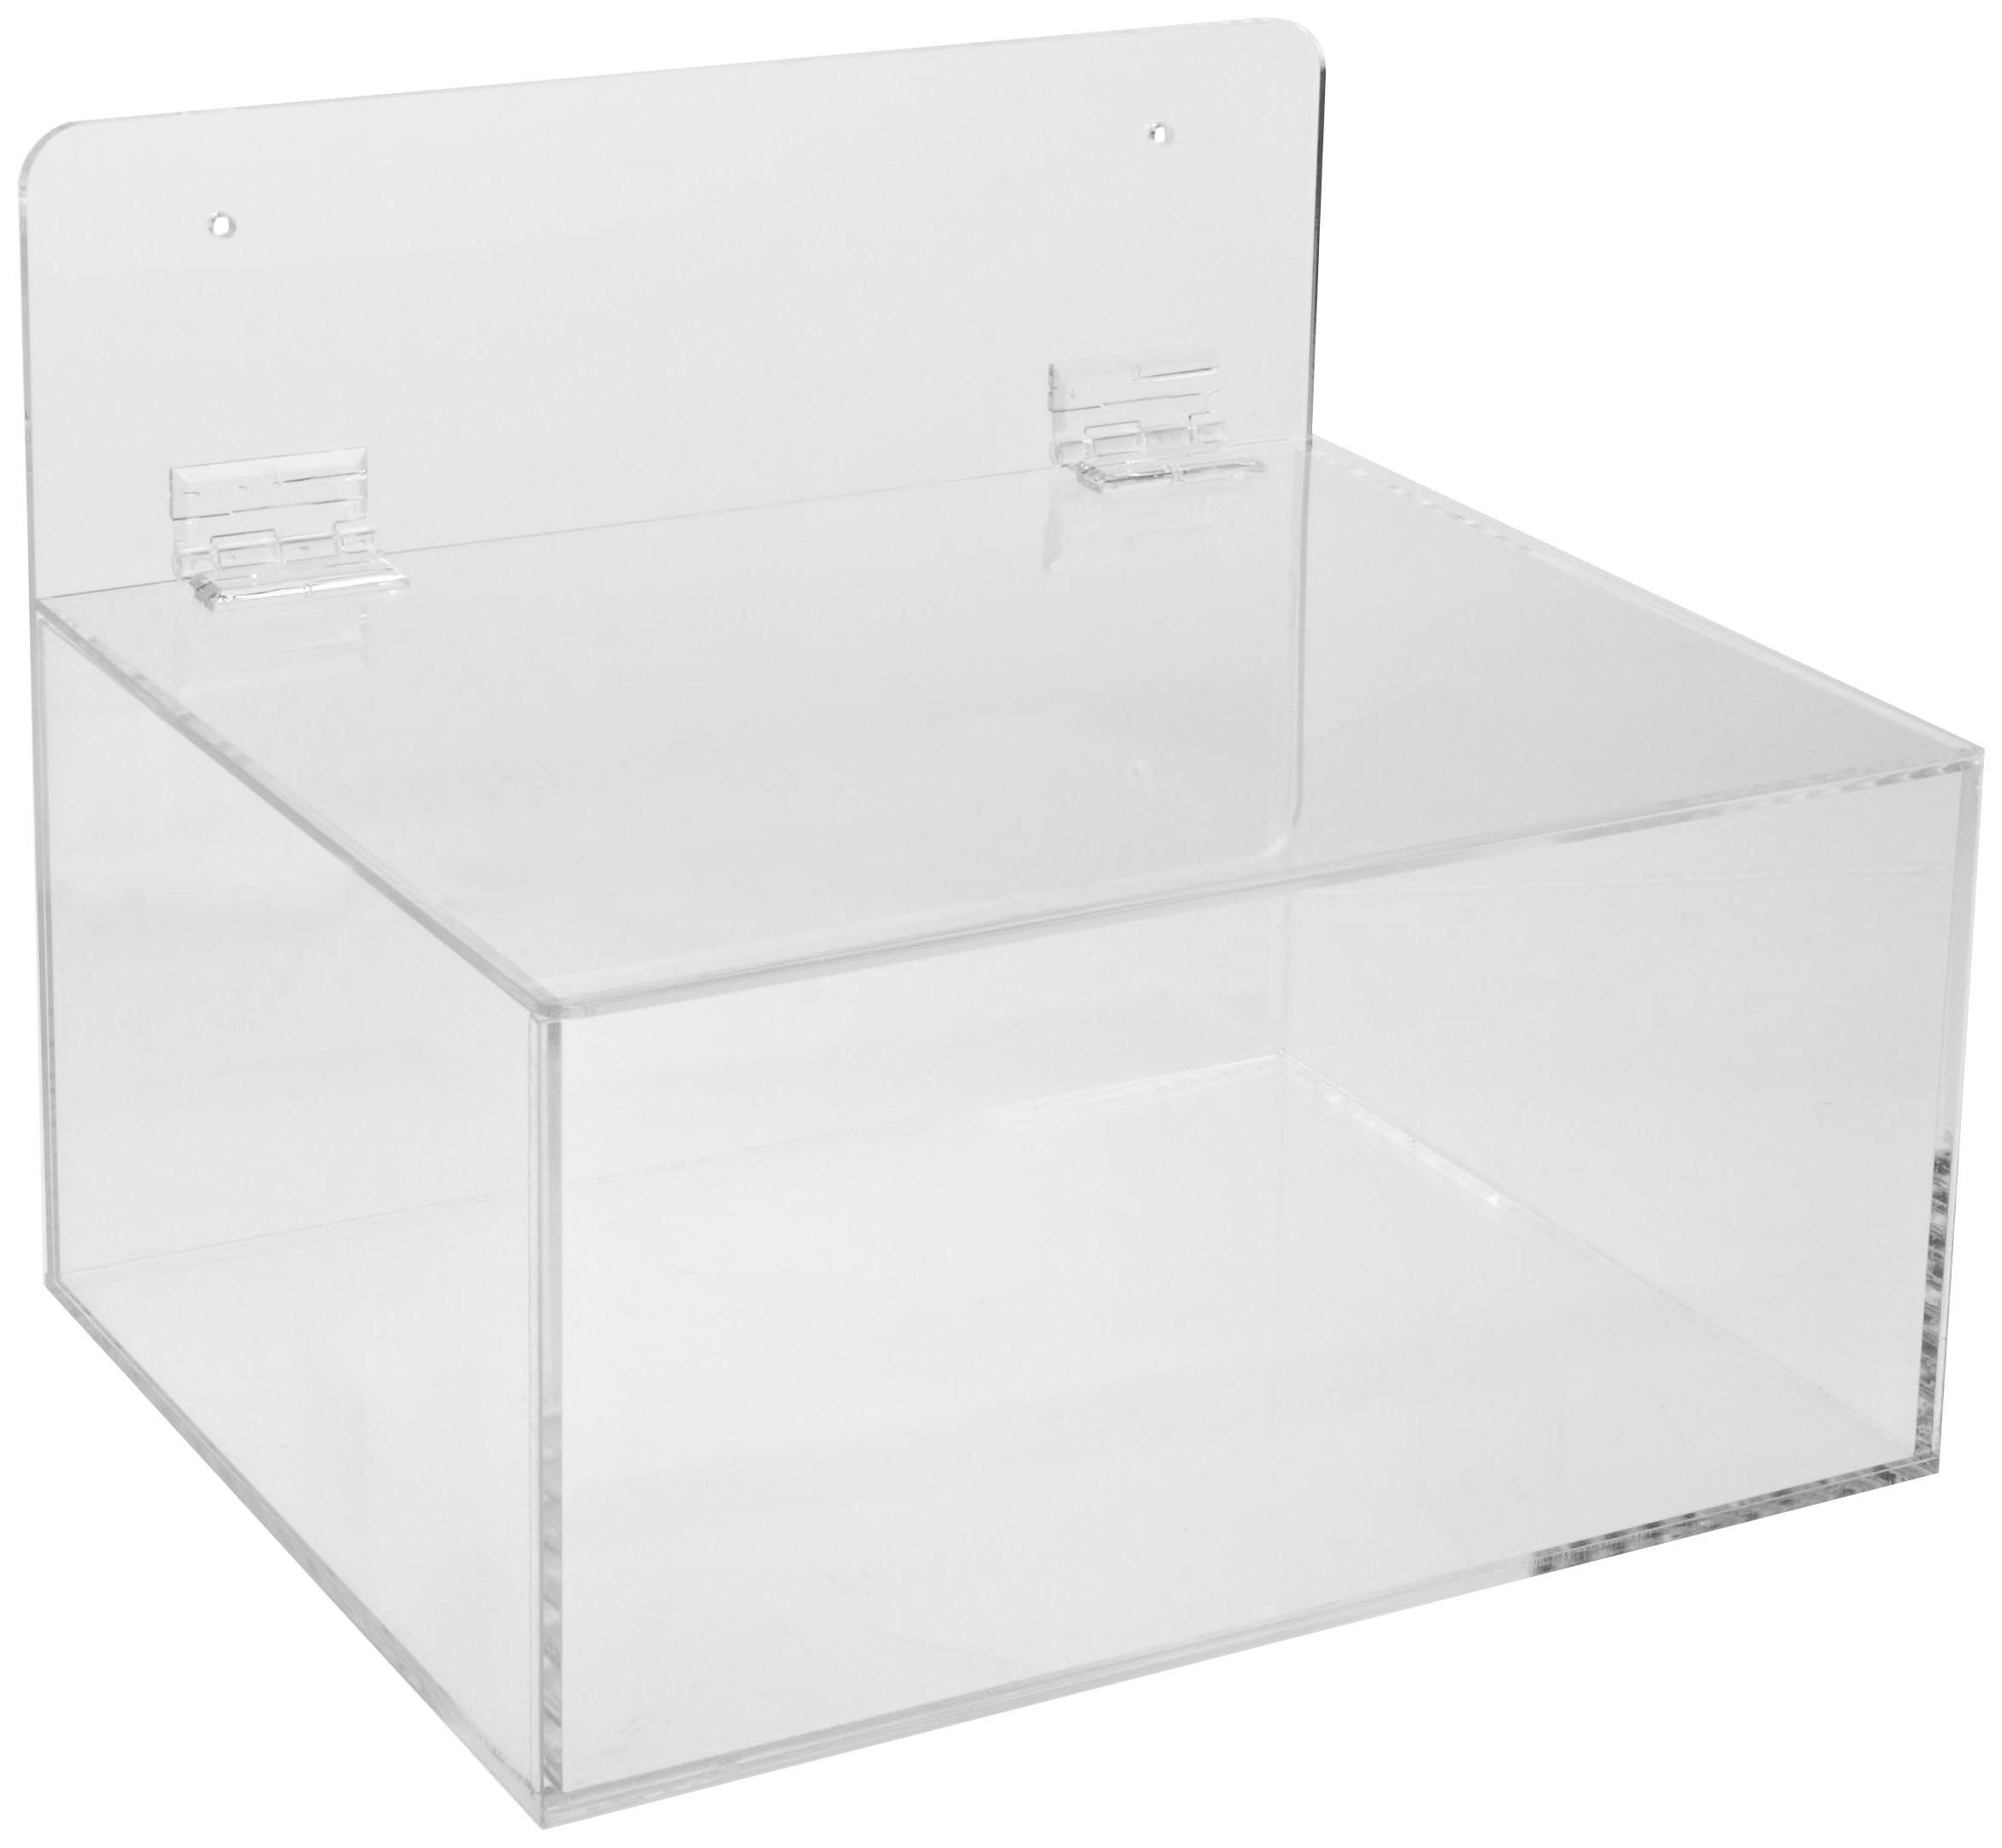 Brady MPPE Plastic Acrylic Miscellaneous Dispenser, Clear, 11-1/2'' W, 9-1/2'' D, 9-1/2'' H